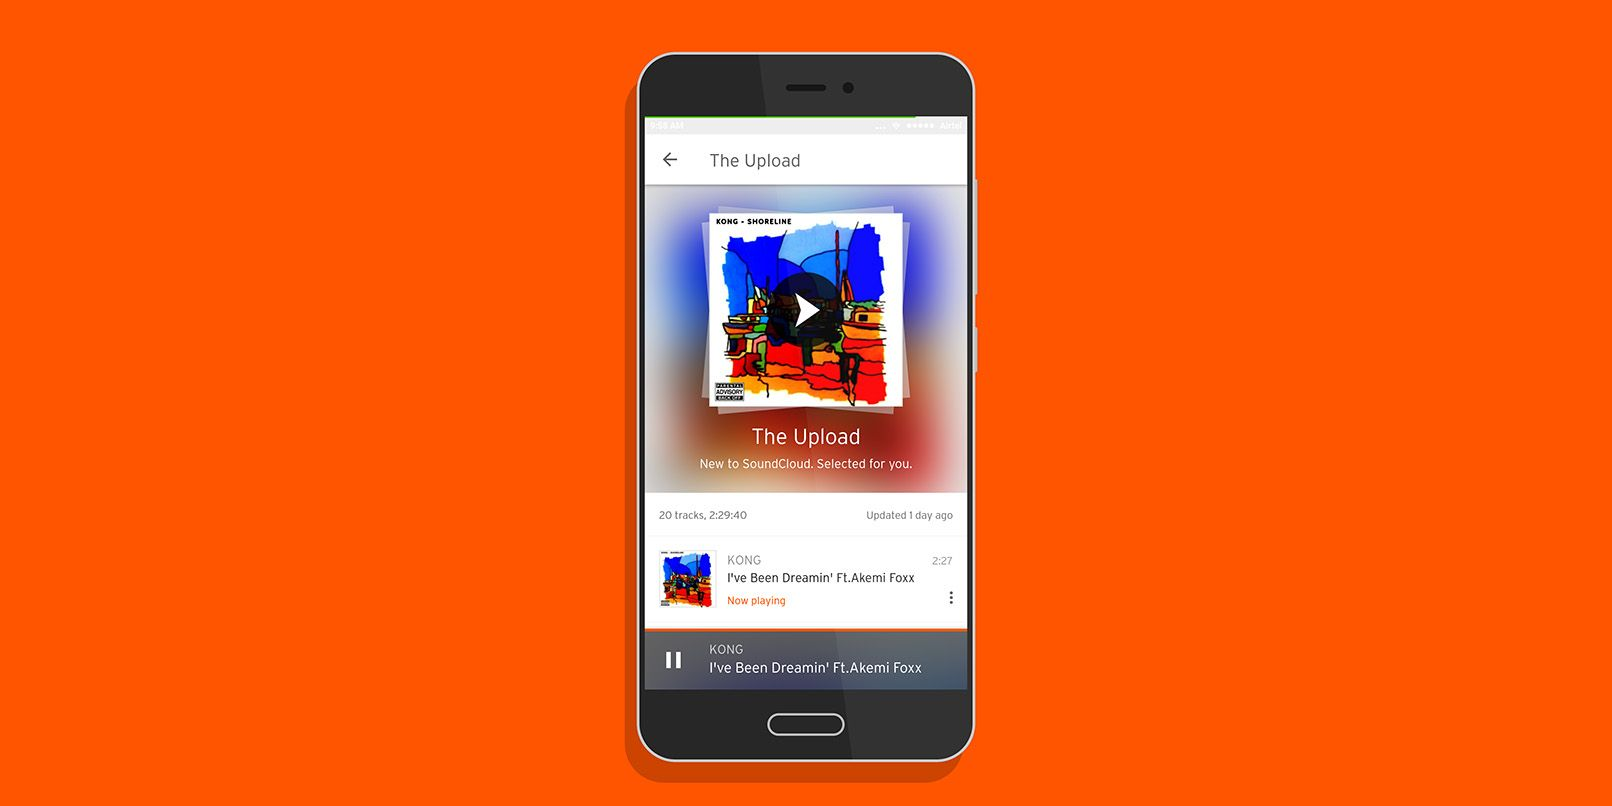 SoundCloud's new feature curates fire playlists with freshly uploaded tracks